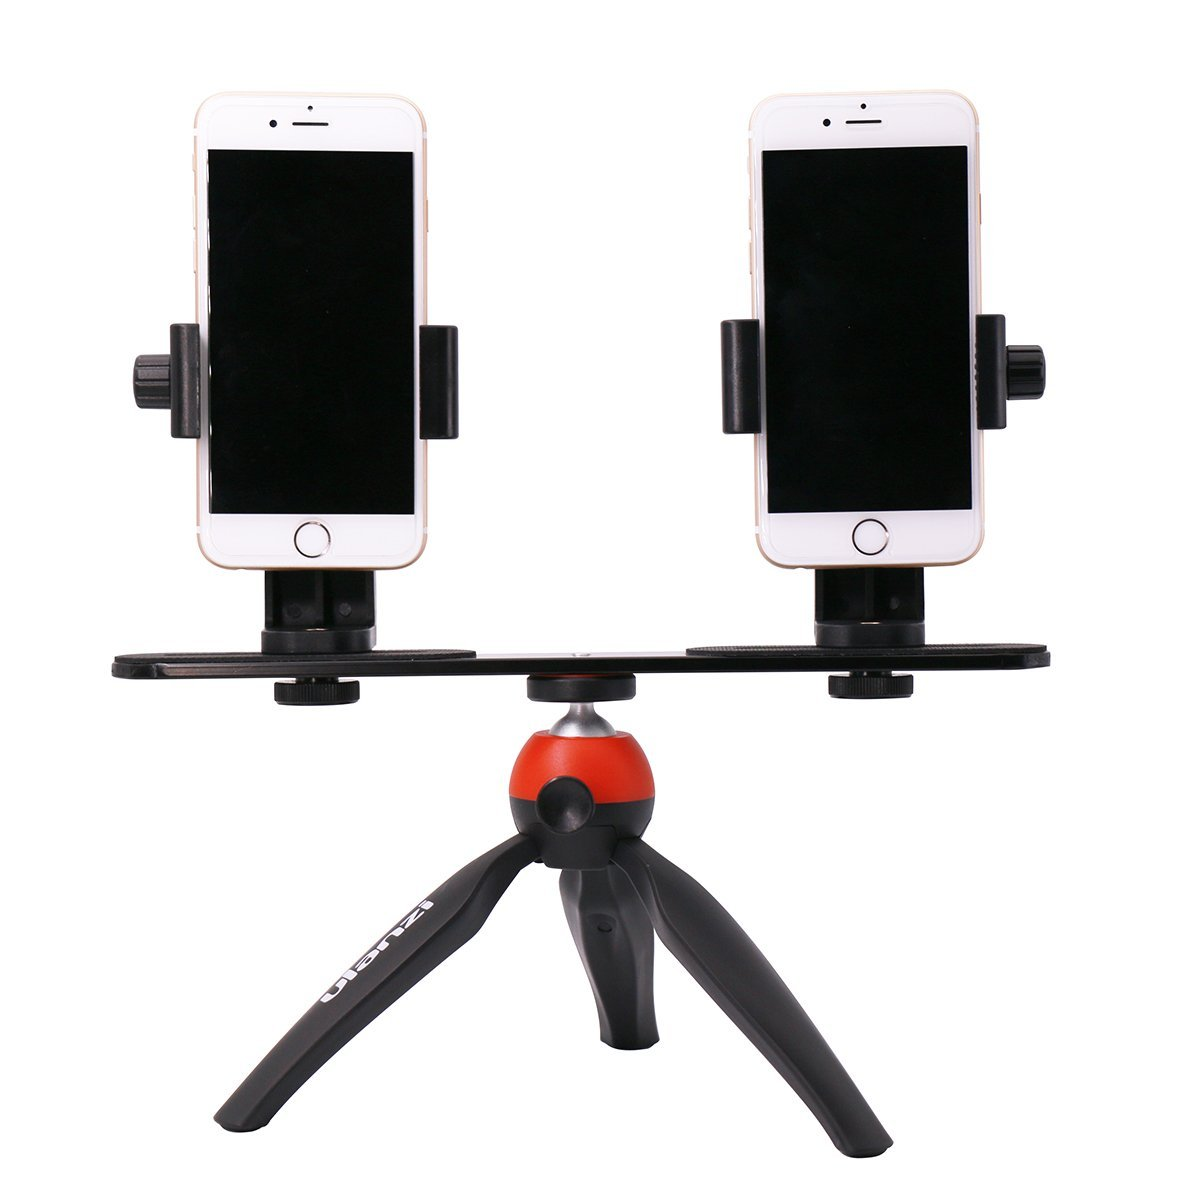 Dual Device Tripod with 2 Phone Tripod Mount Setup Option for Facebook Youtube Live Streaming, Video Recording Etc.